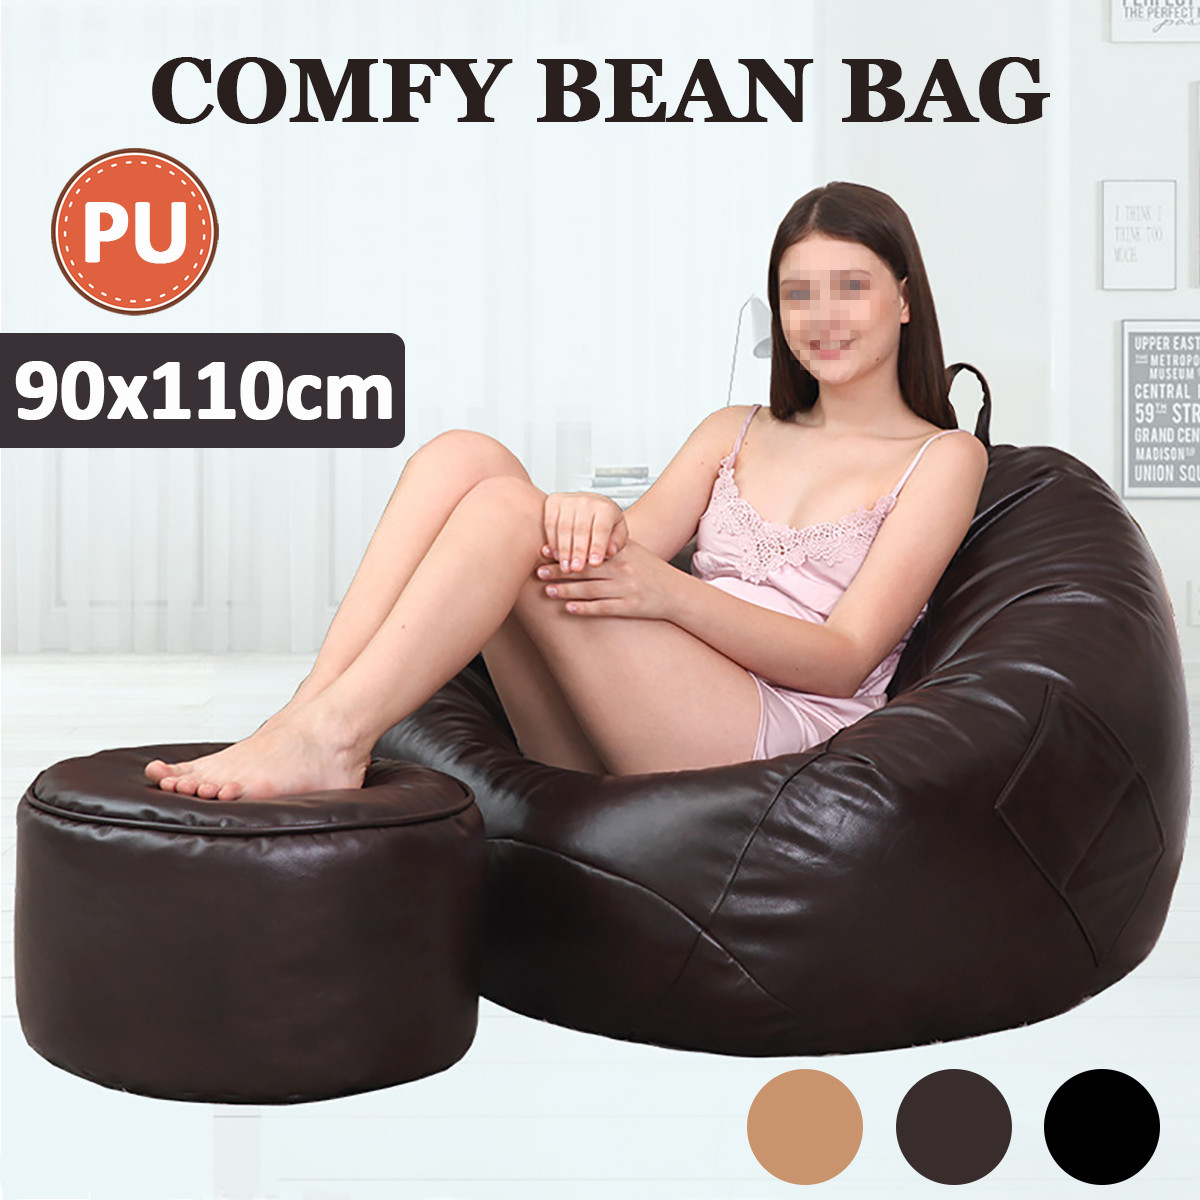 PU Leather BeanBag Sofa Cover Living Room Bedroom Sofa Bed Lazy Tatami Bean Bag Chair Home Leisure Single Couch without FillerPU Leather BeanBag Sofa Cover Living Room Bedroom Sofa Bed Lazy Tatami Bean Bag Chair Home Leisure Single Couch without Filler